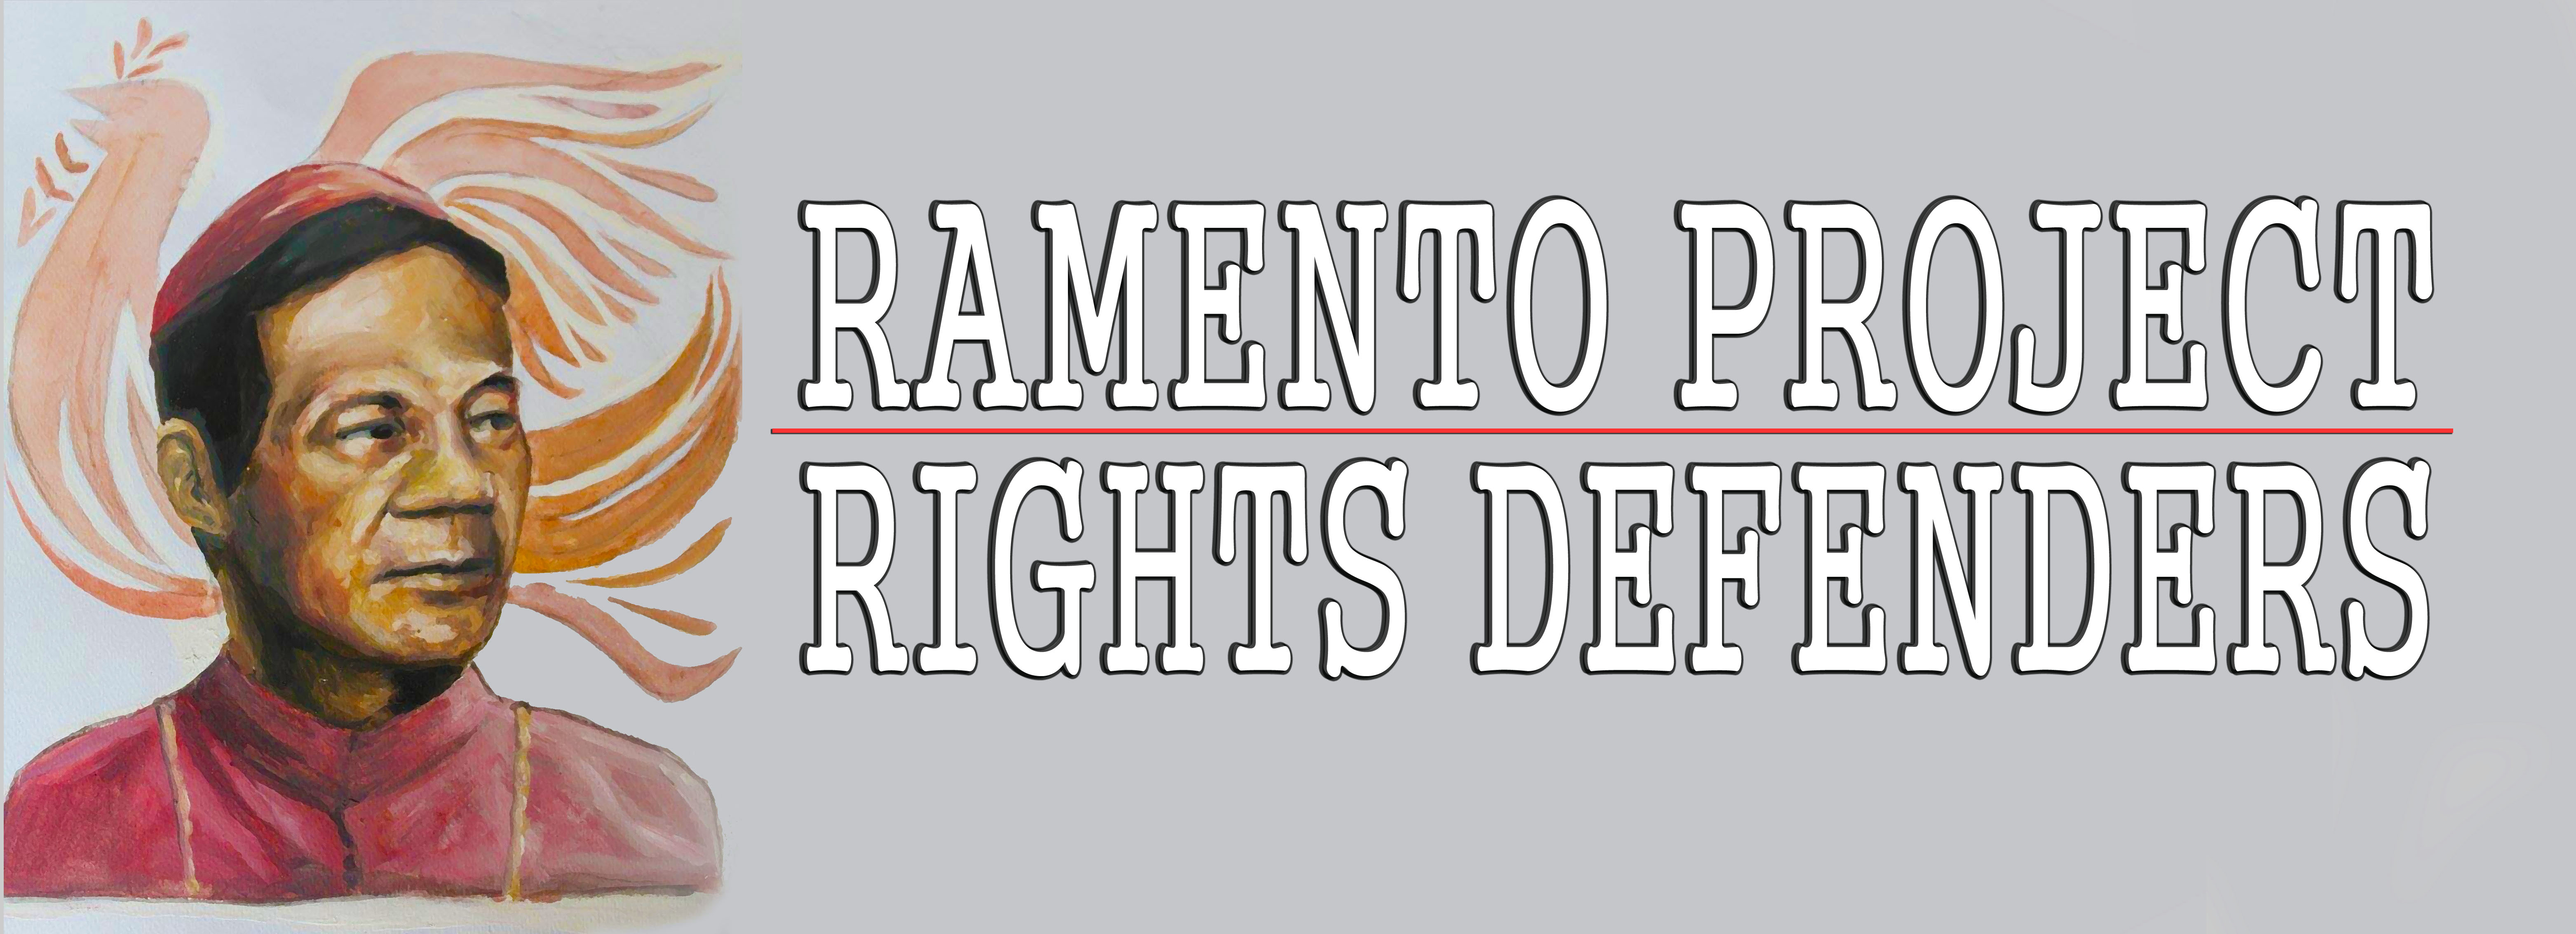 Ramento Project for Rights Defenders